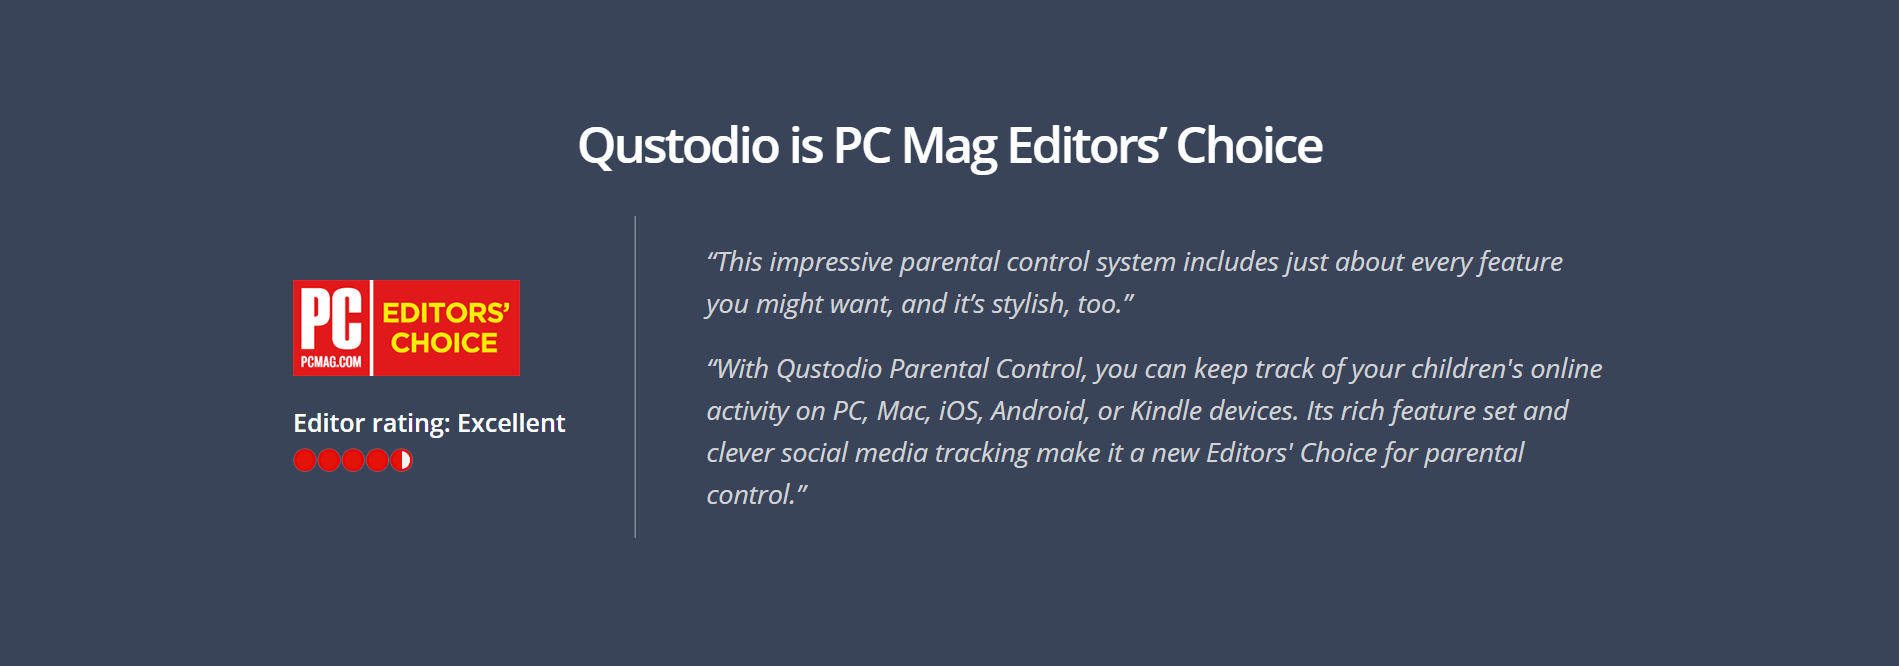 PCMag Editors Choice Qustodio